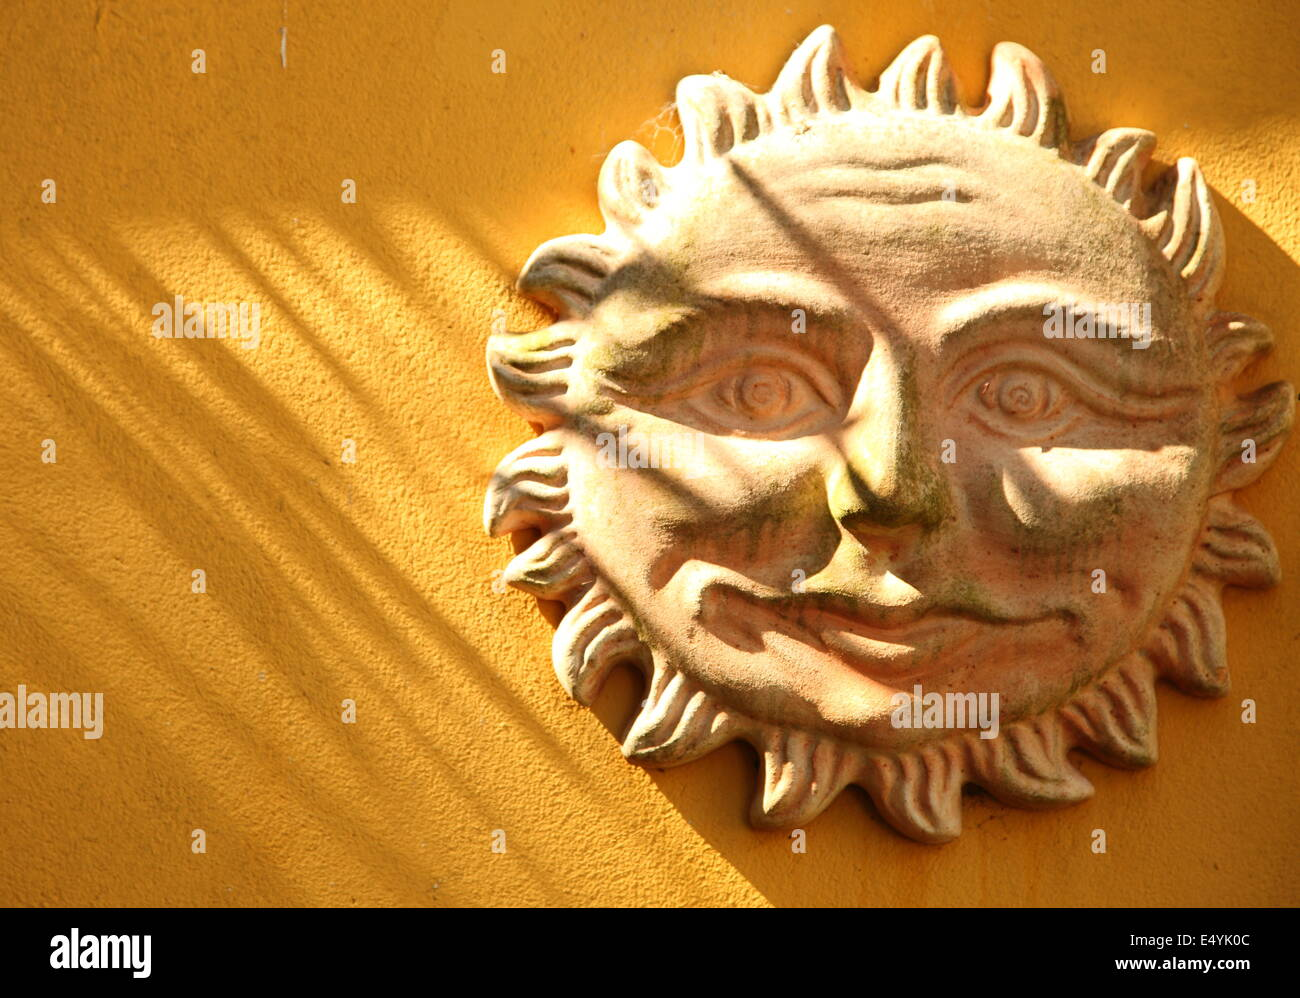 Terracotta Wall Stock Photos & Terracotta Wall Stock Images - Alamy